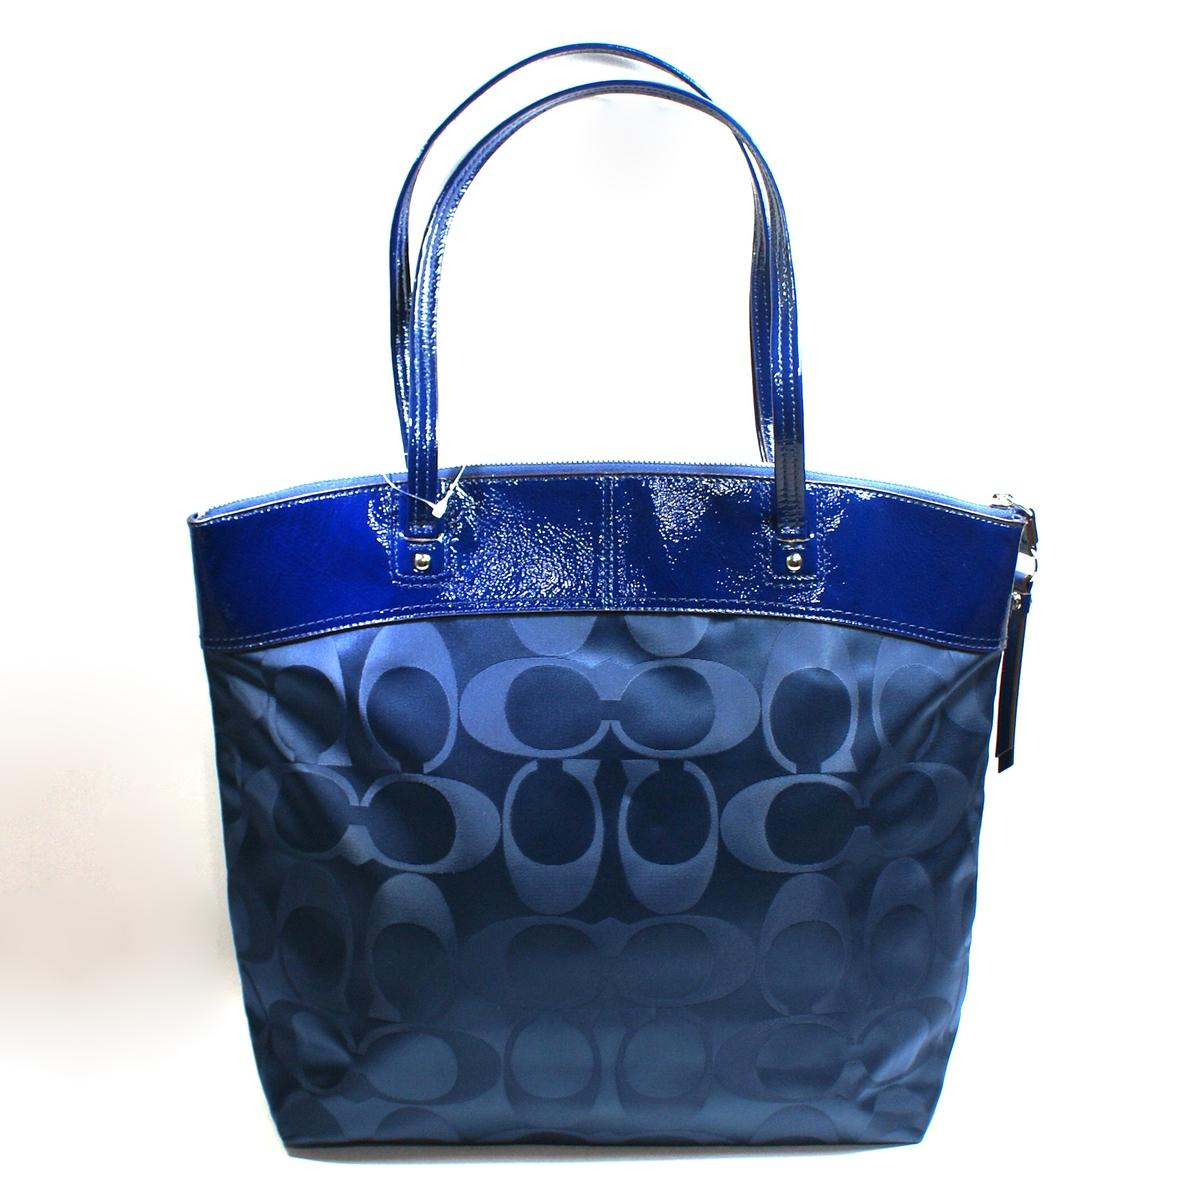 Home Coach Laura Signature Navy Blue Nylon Tote Shoulder Bag